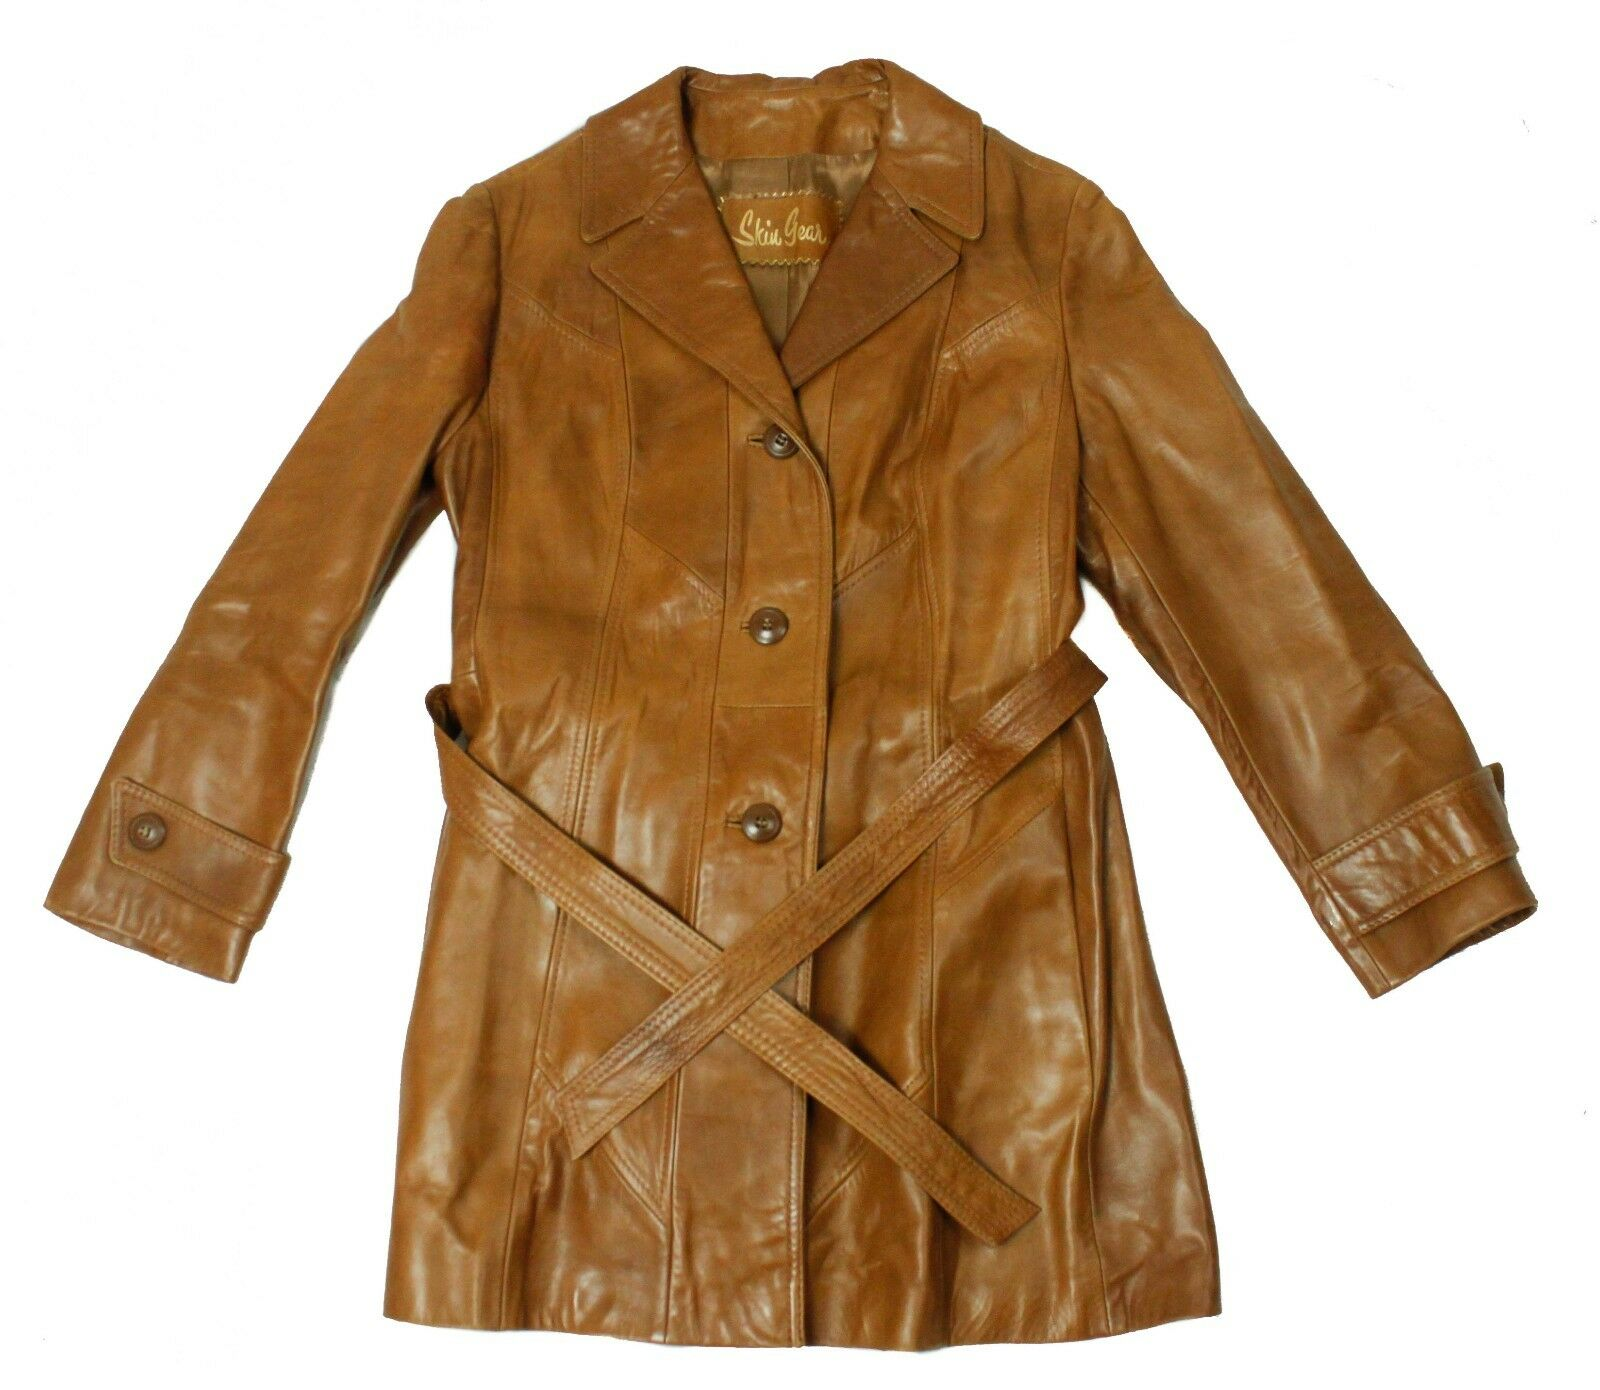 Vintage Skiu Gear Brown Leather Acetate Lining Womens Trench Coat With Belt